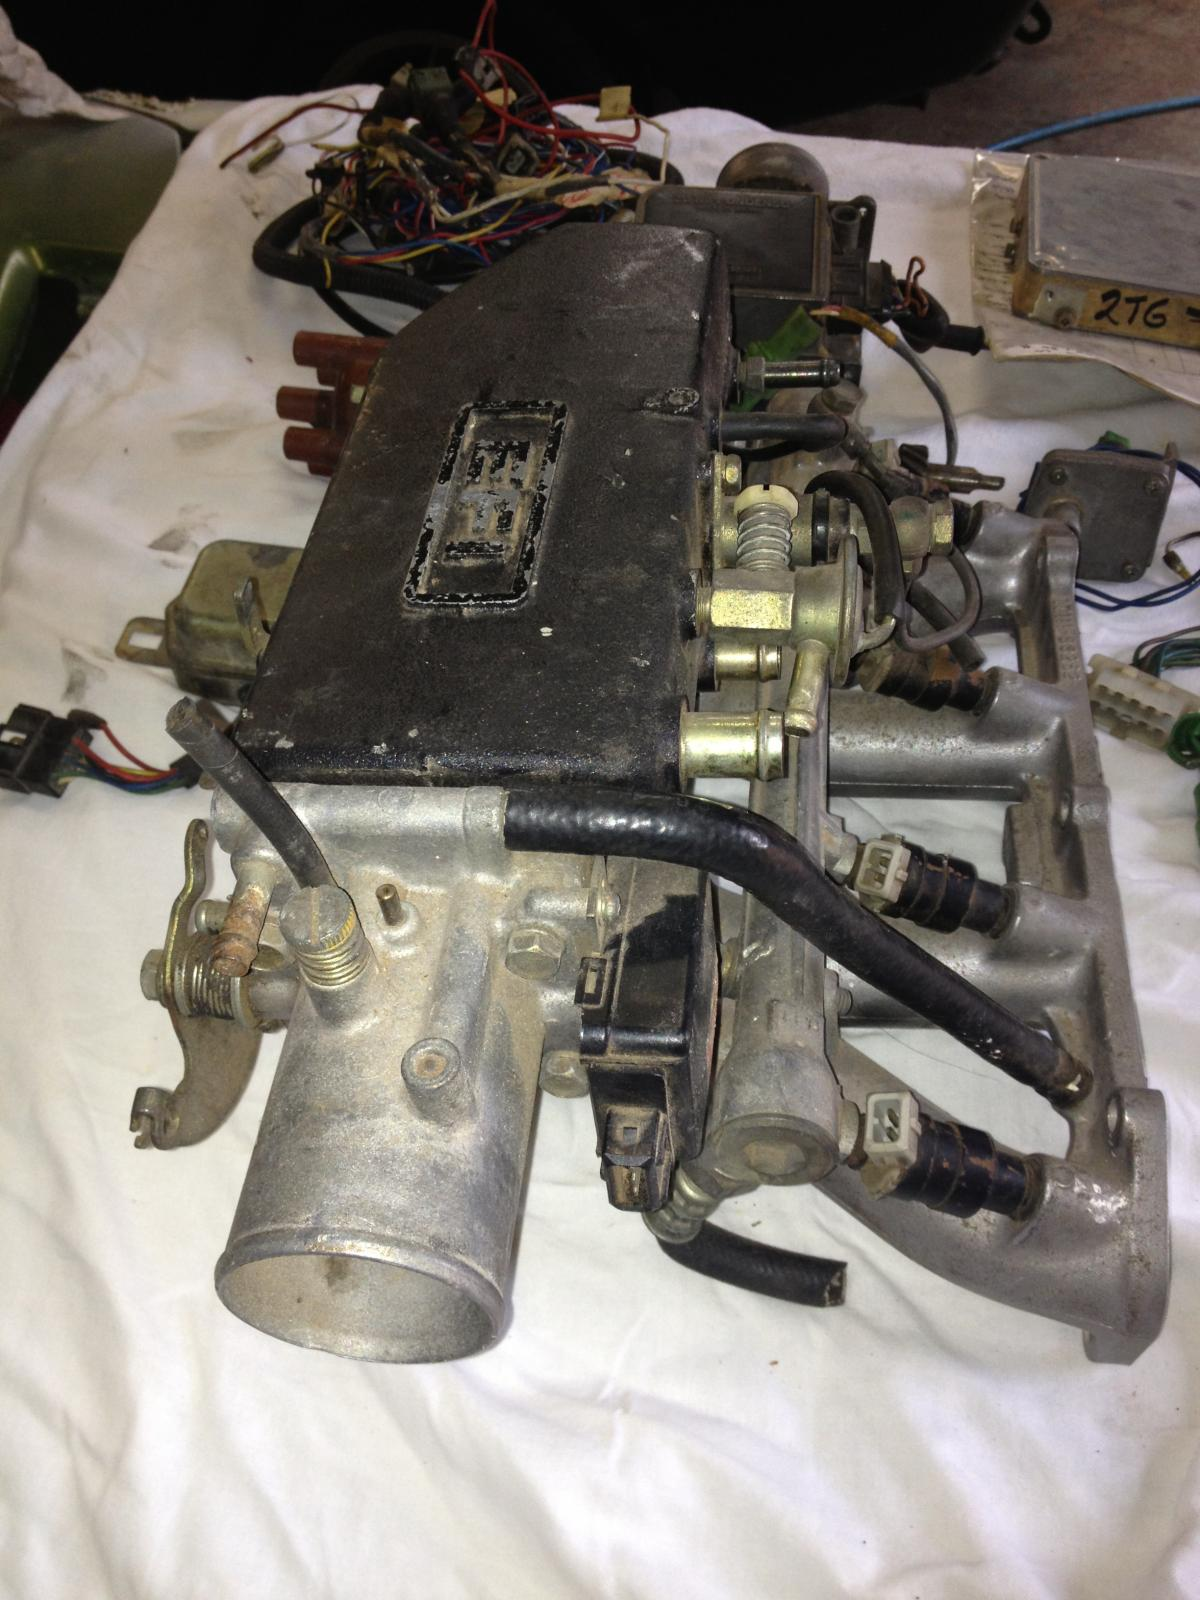 2tg Fuel Injection - For Sale - Car Parts